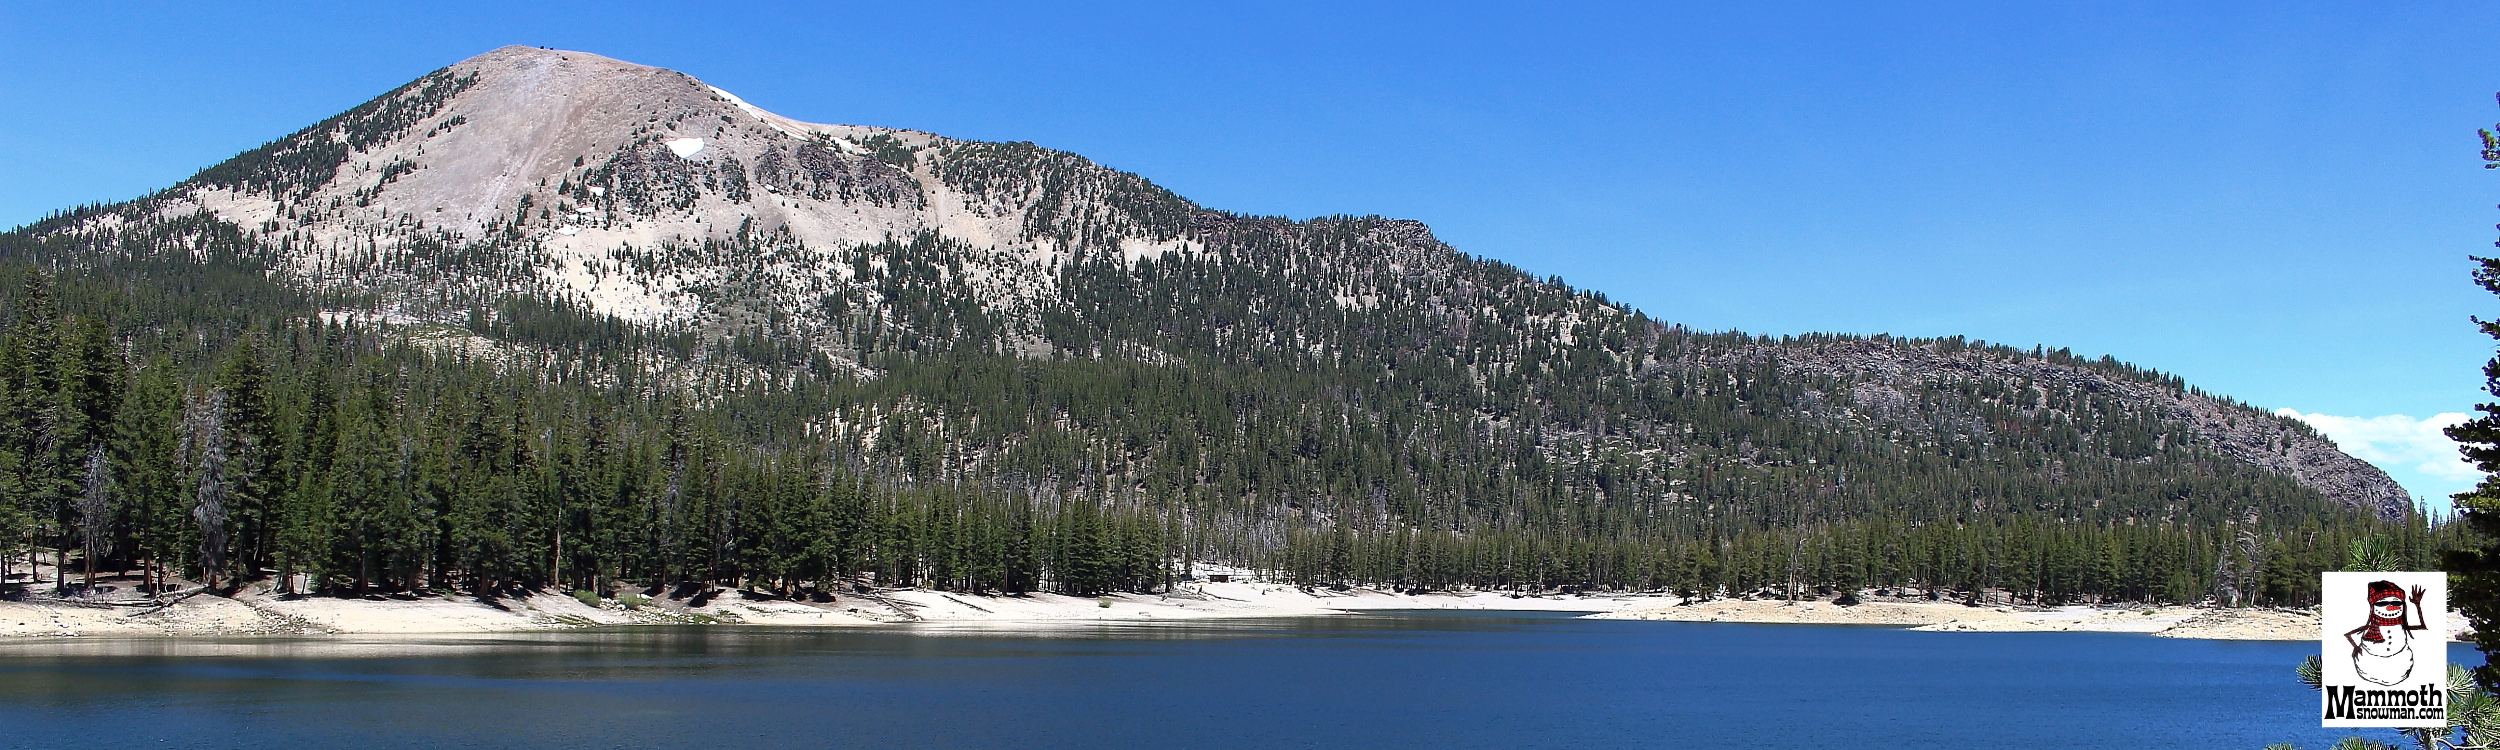 BackSide View of Mammoth Mountain